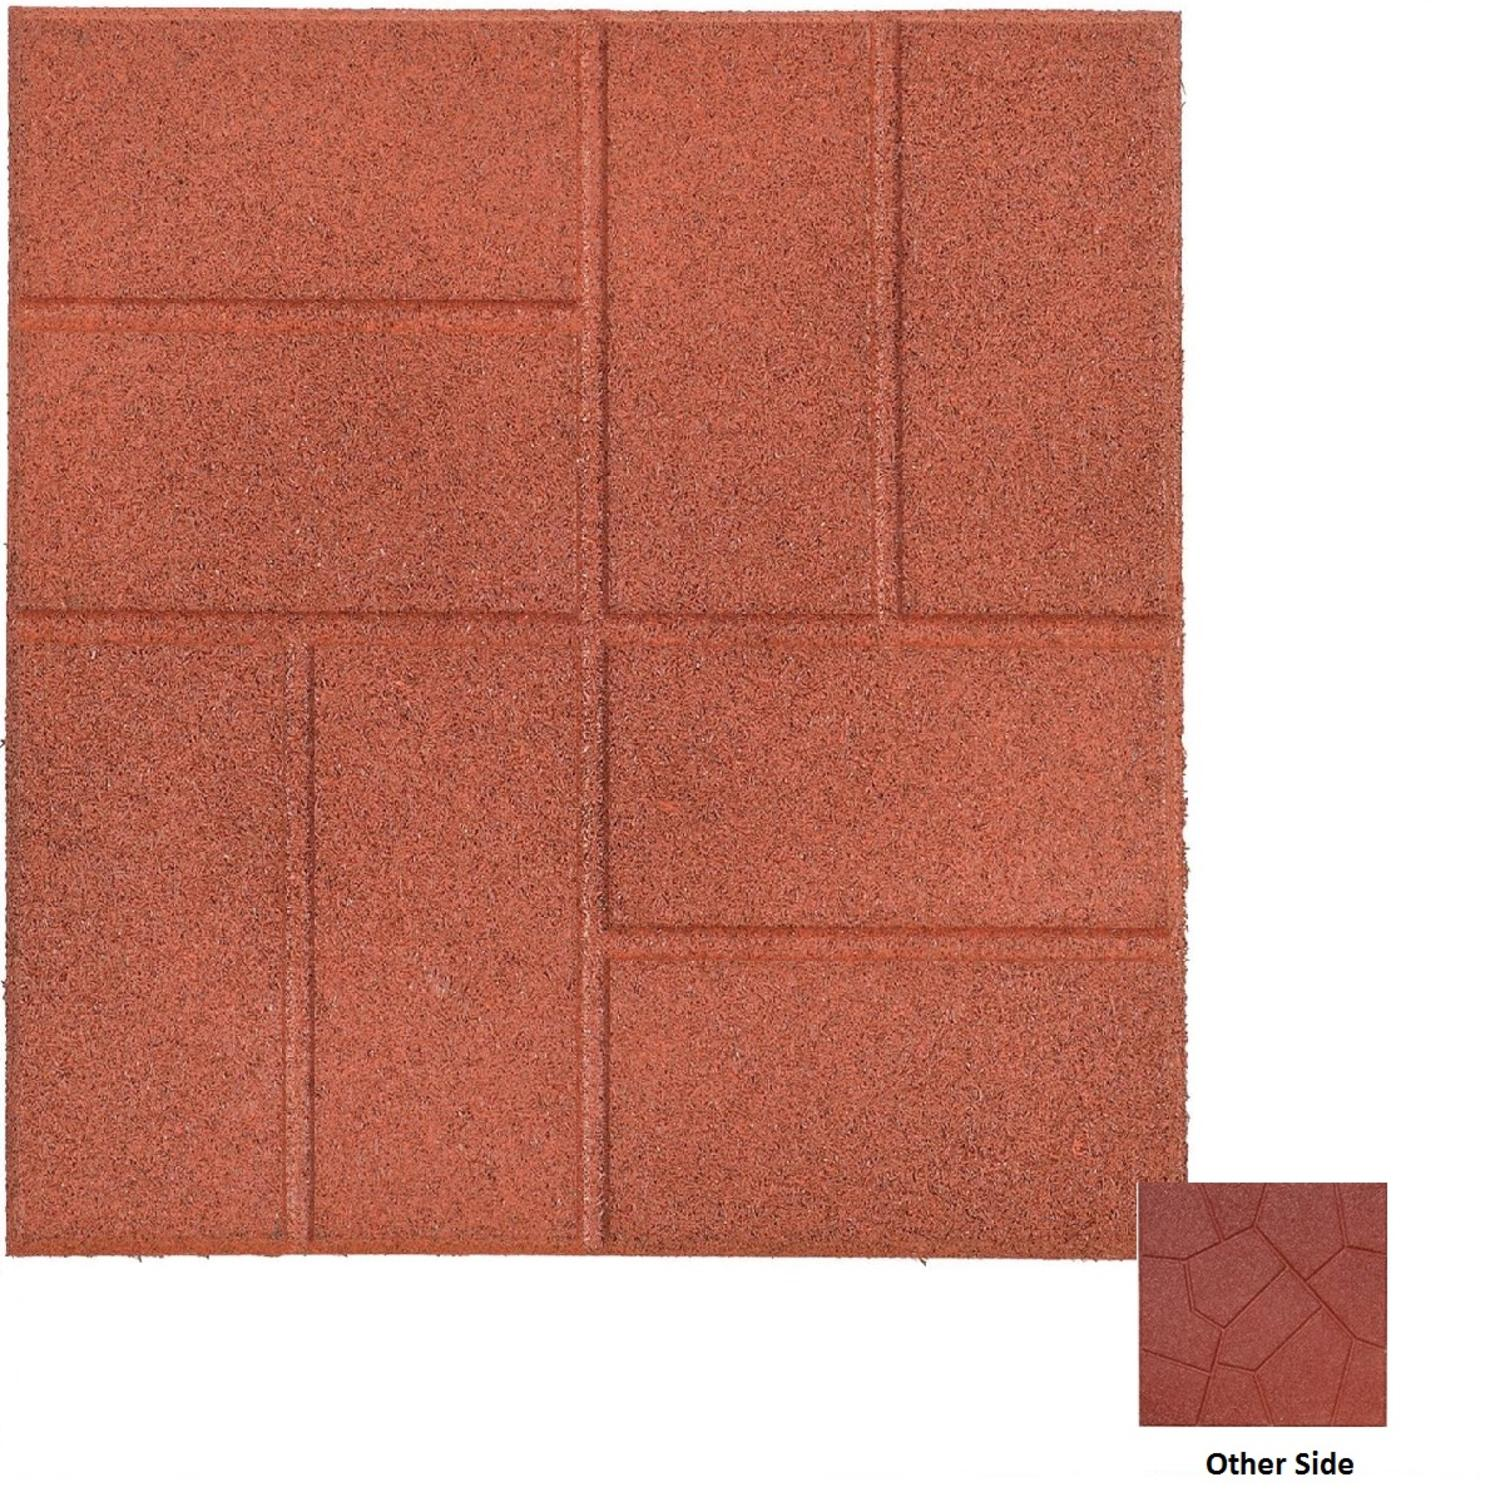 16 x 16 dual sided mahogany red recycled rubber paver squares for outdoor patios and decks